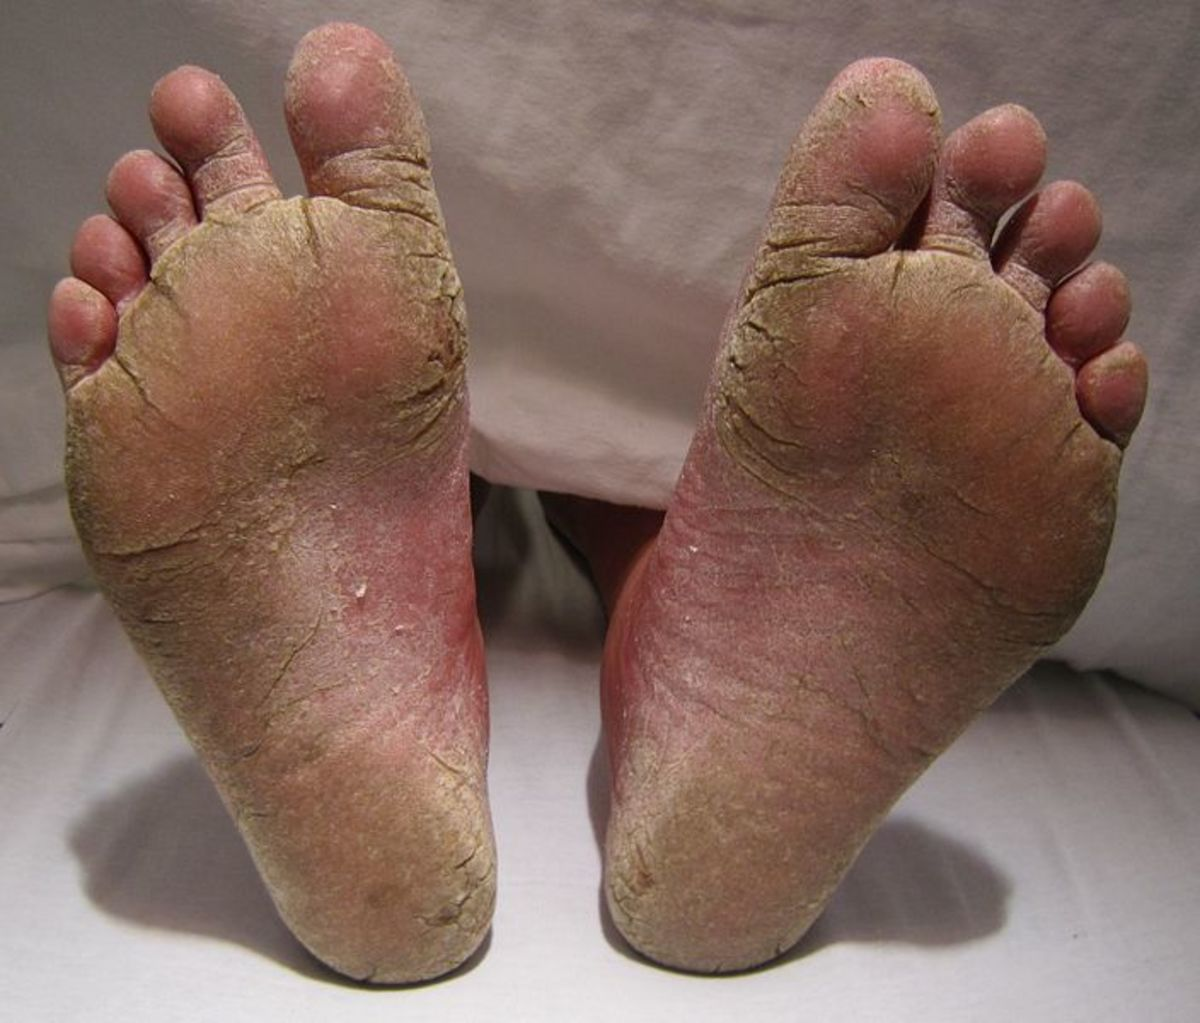 A severe case of athlete's foot